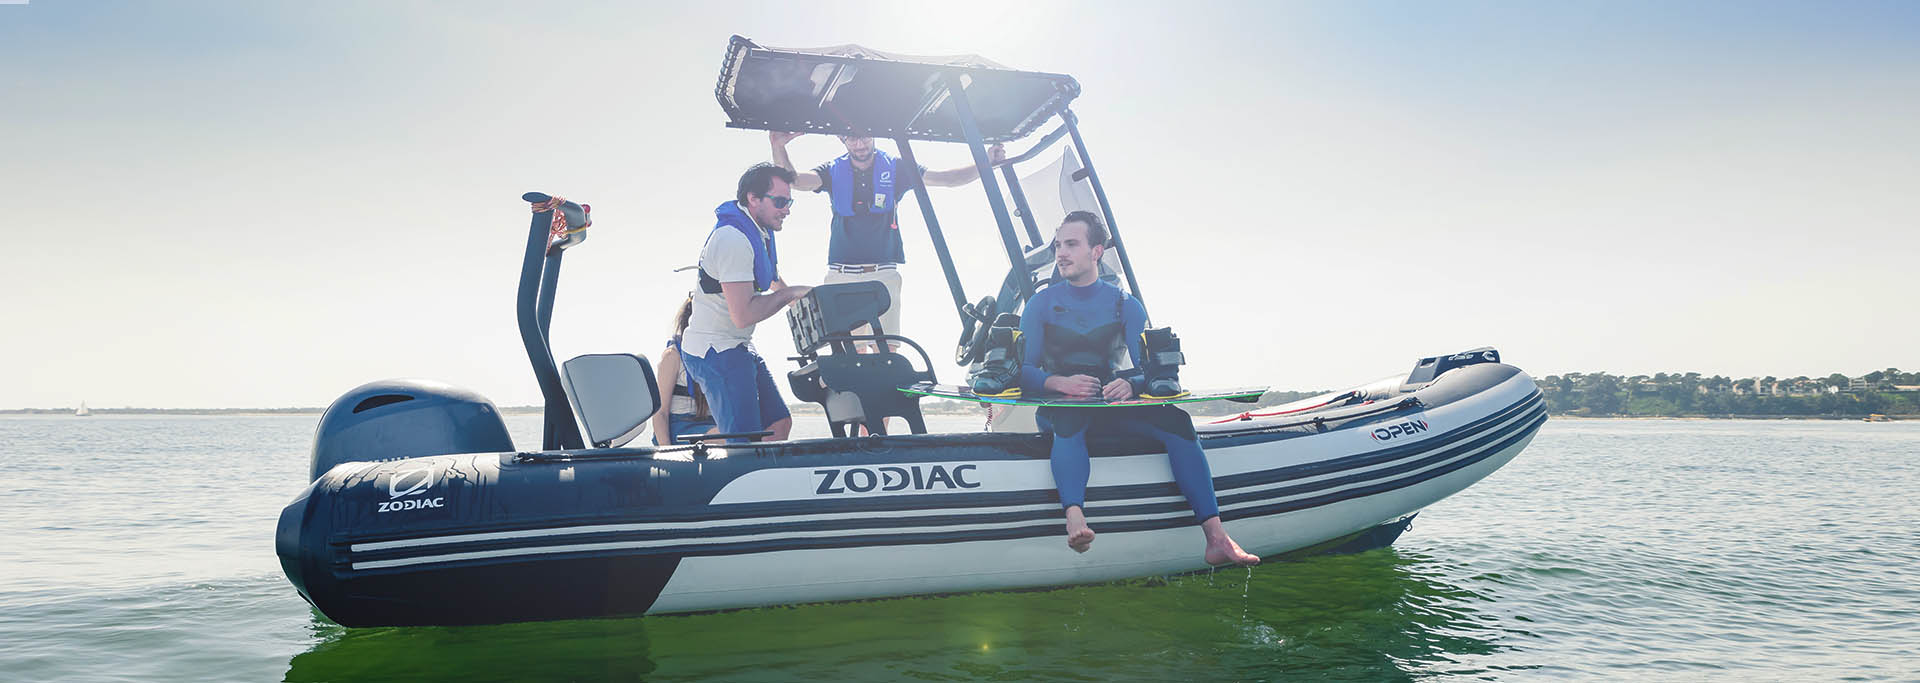 Zodiac Open 5.5 boat floating on the water with wakeboarder